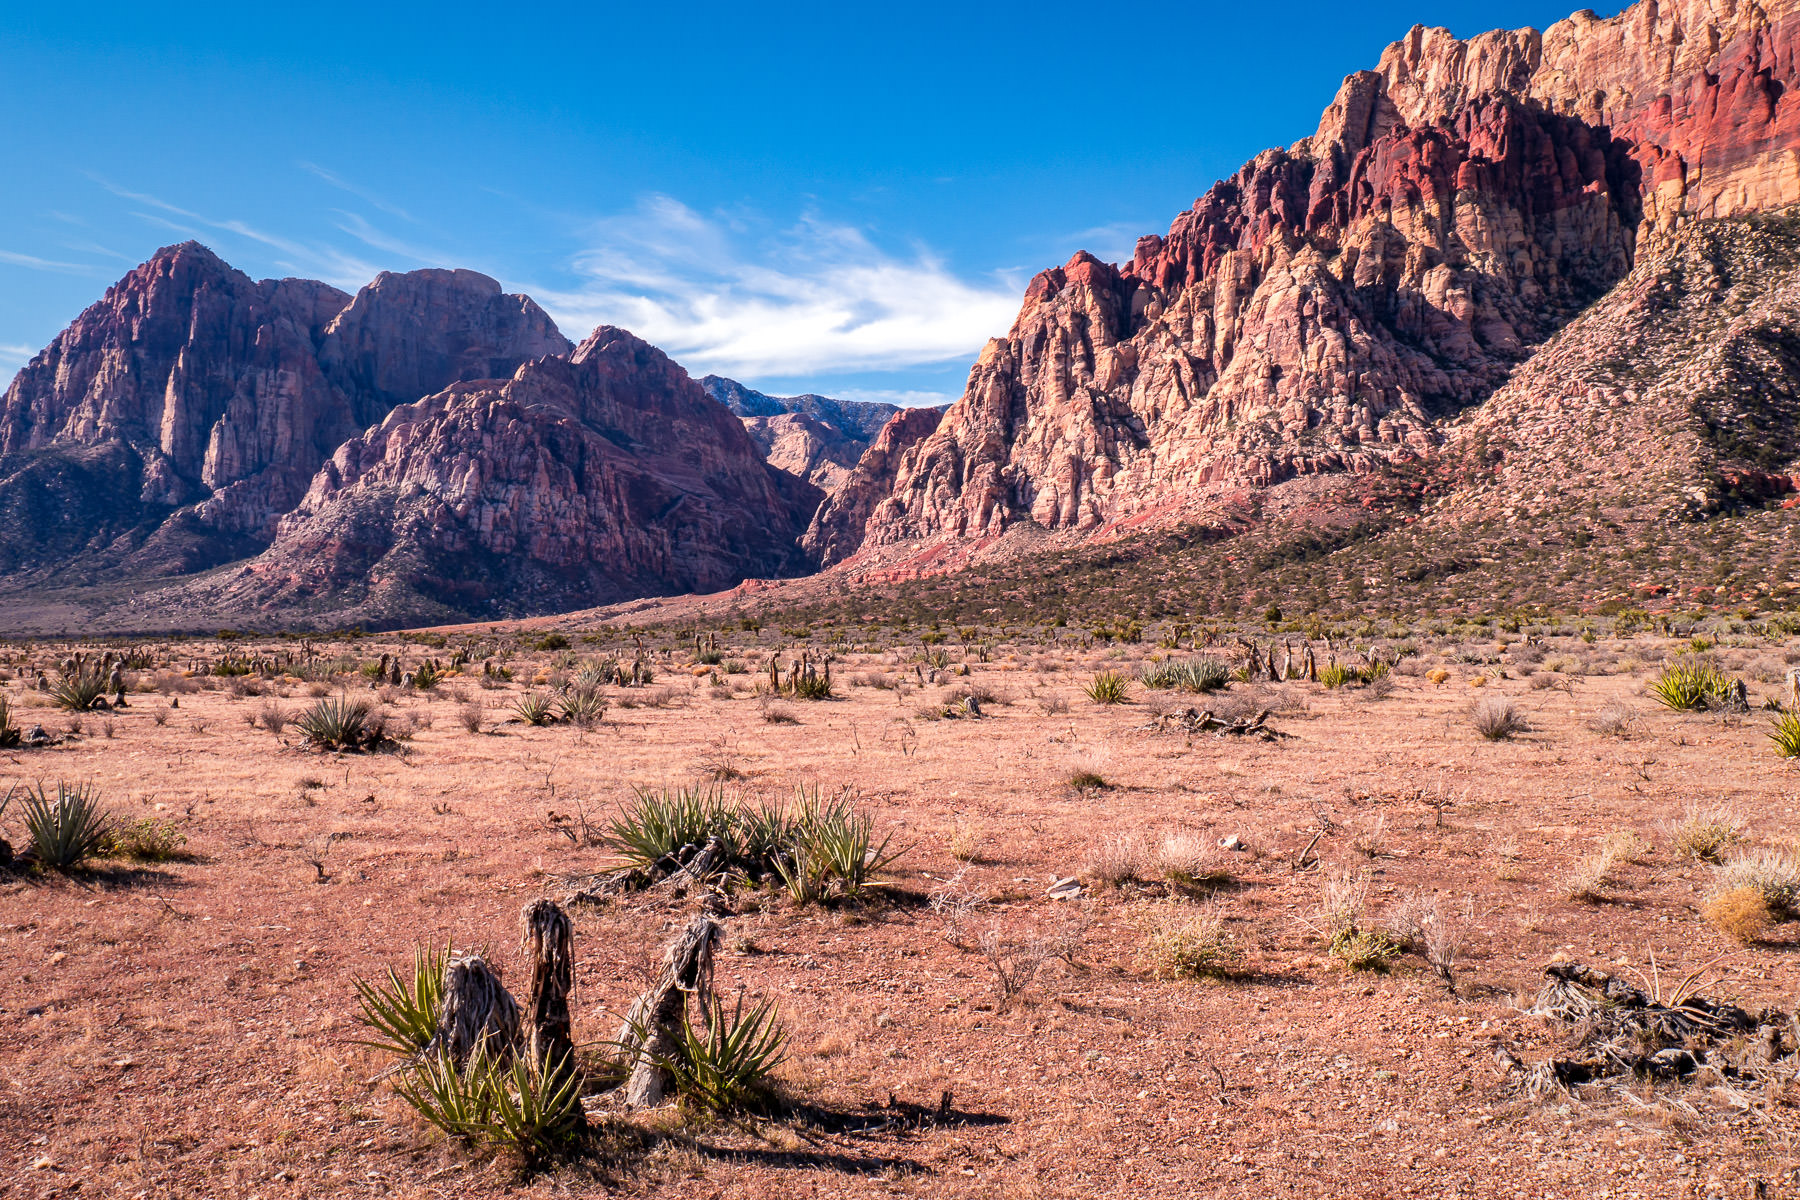 The arid, appropriately-named Red Rock Canyon, near Las Vegas.